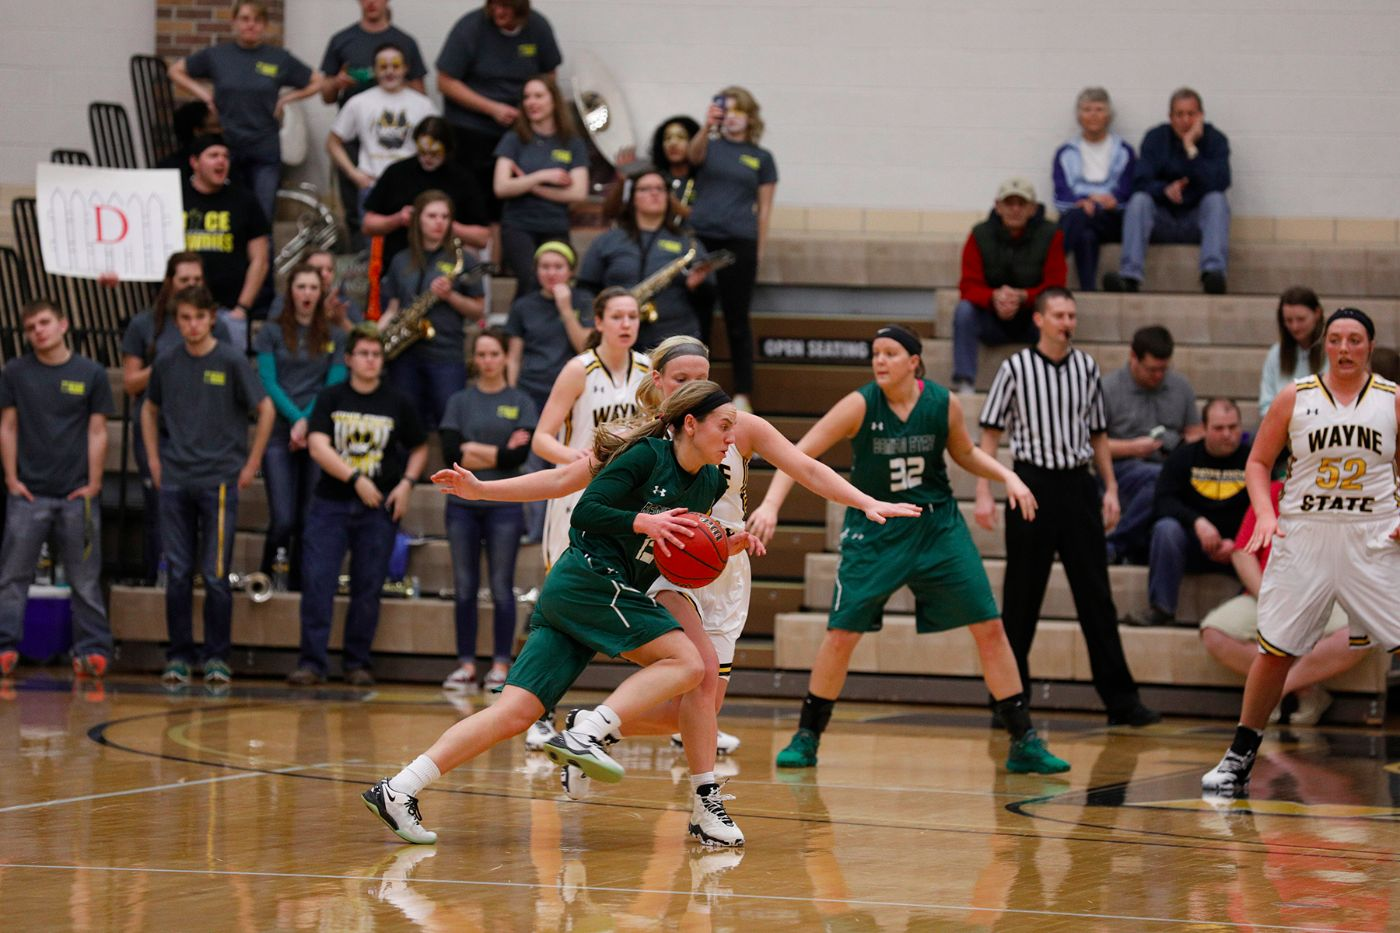 Beavers season ended after 85-61 loss to Wildcats in NSIC Tournament opener